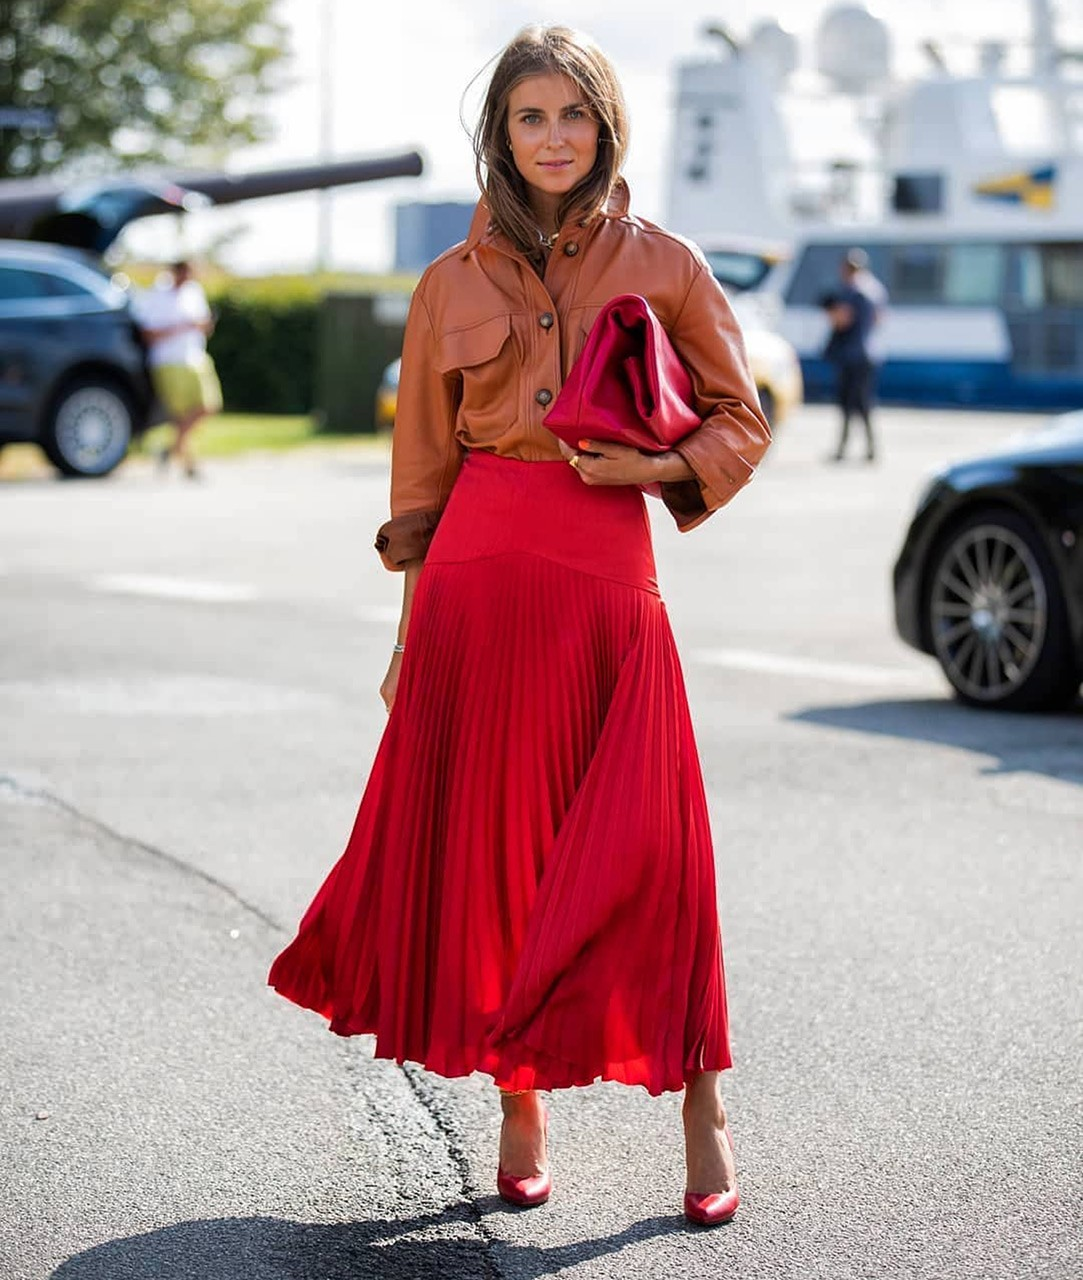 how-to-wear-bright-colors-in-fall-4.jpg